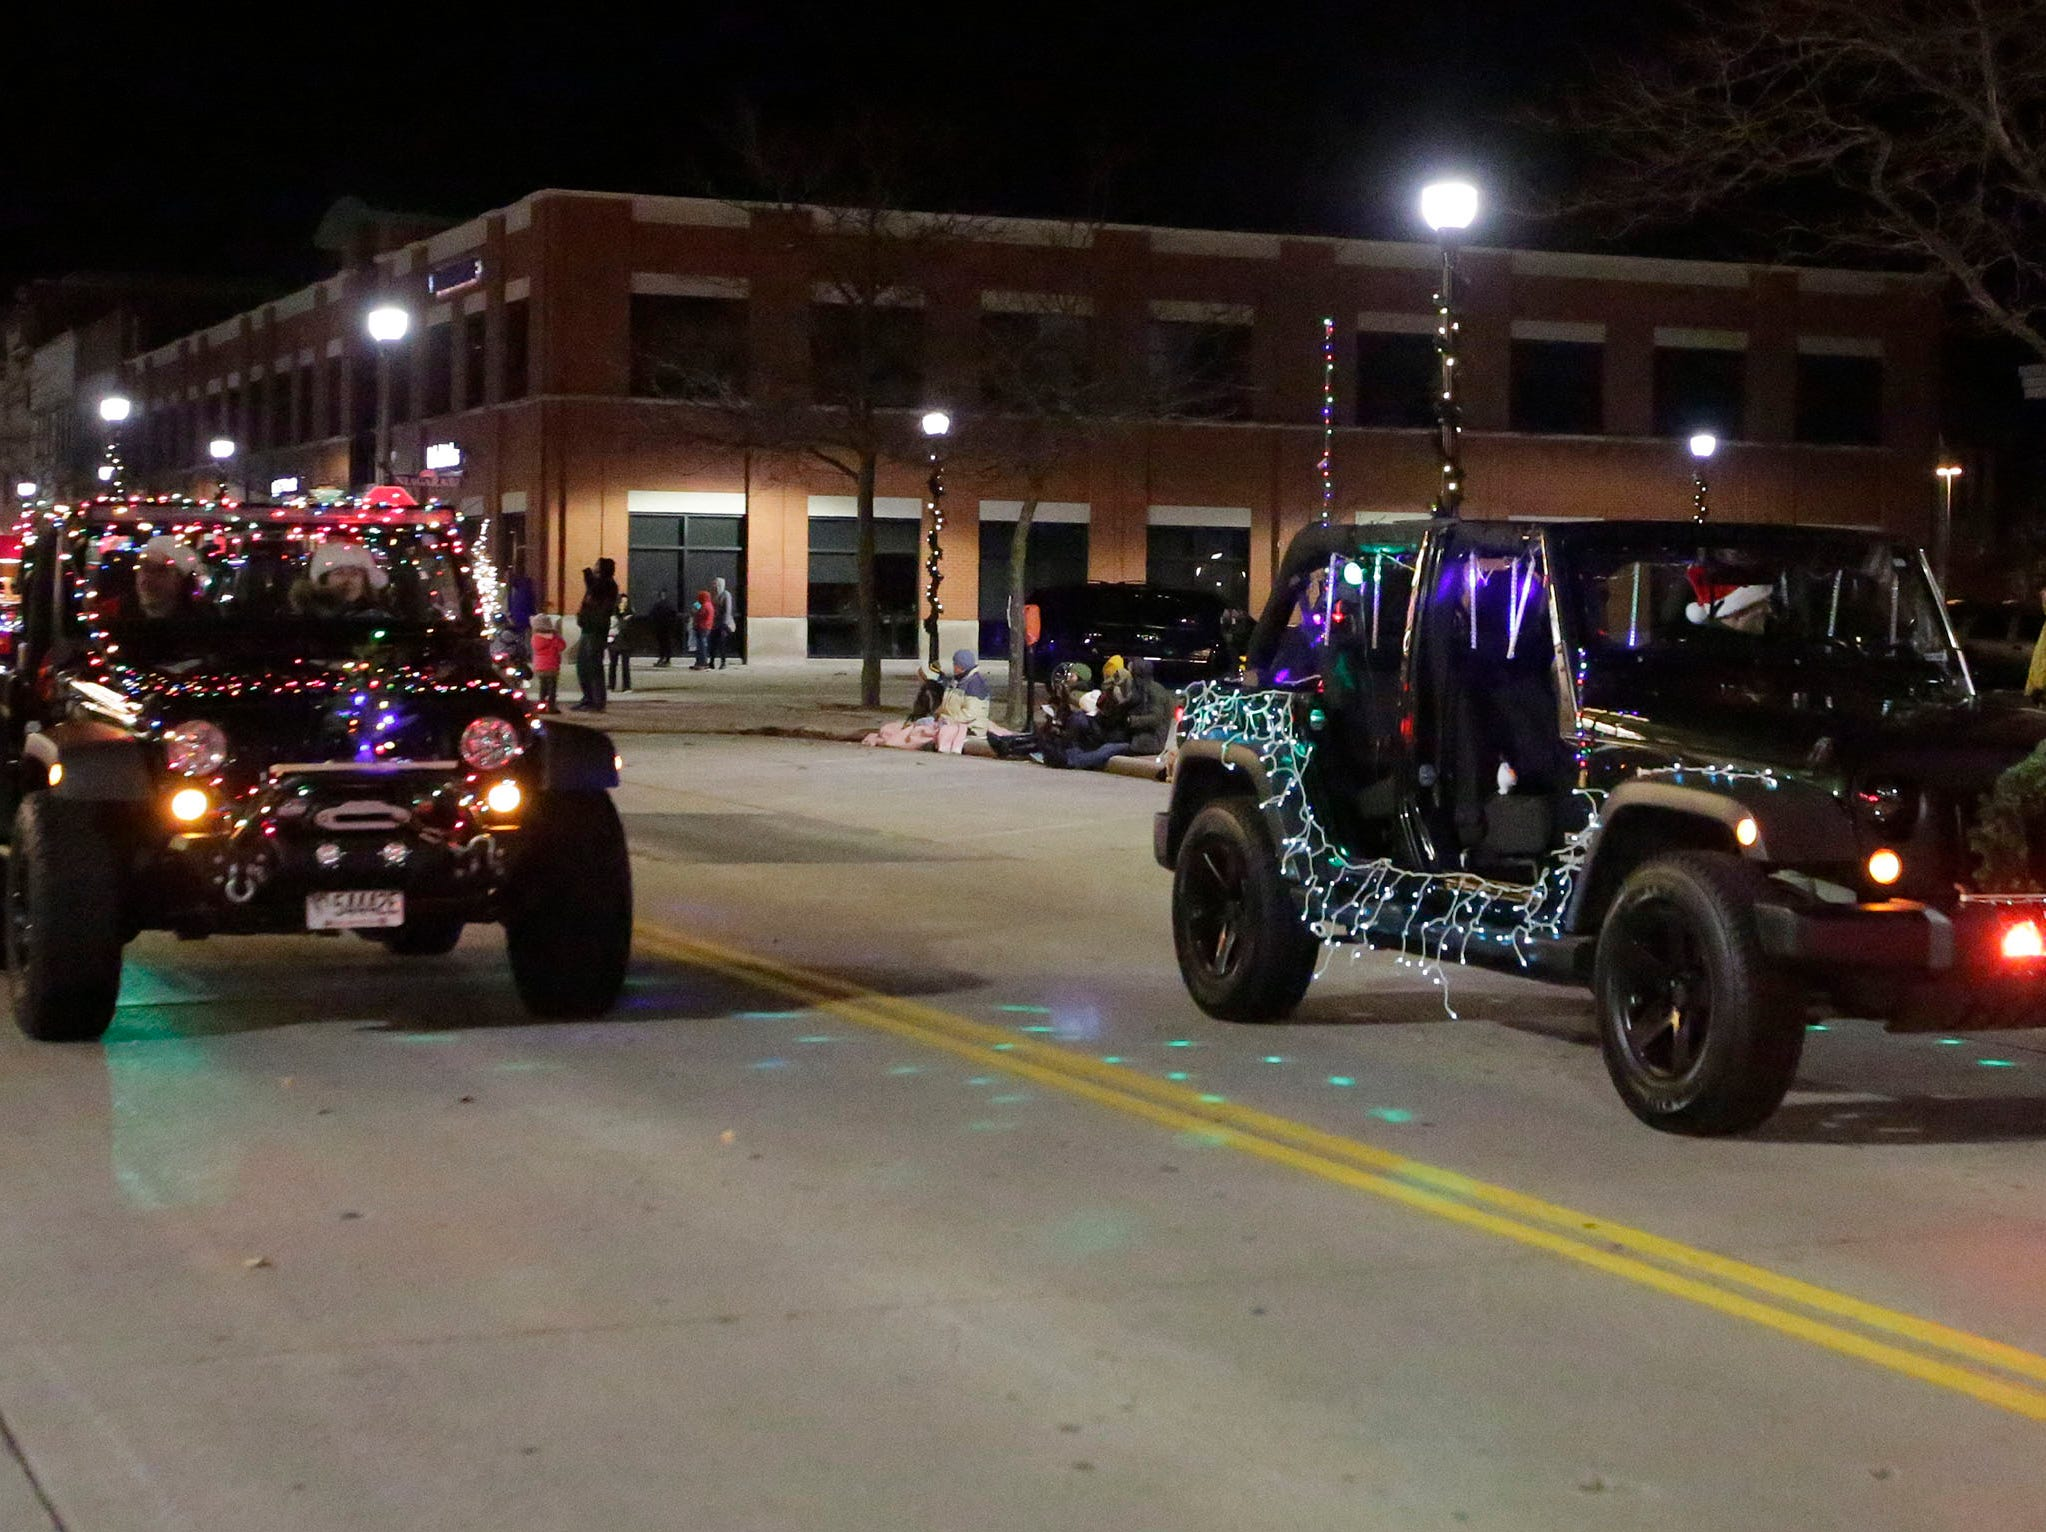 Jeeps light up North 8th Street at the 26th Annual Jaycees Holiday Parade, Sunday, November 25, 2018 in Sheboygan, Wis.